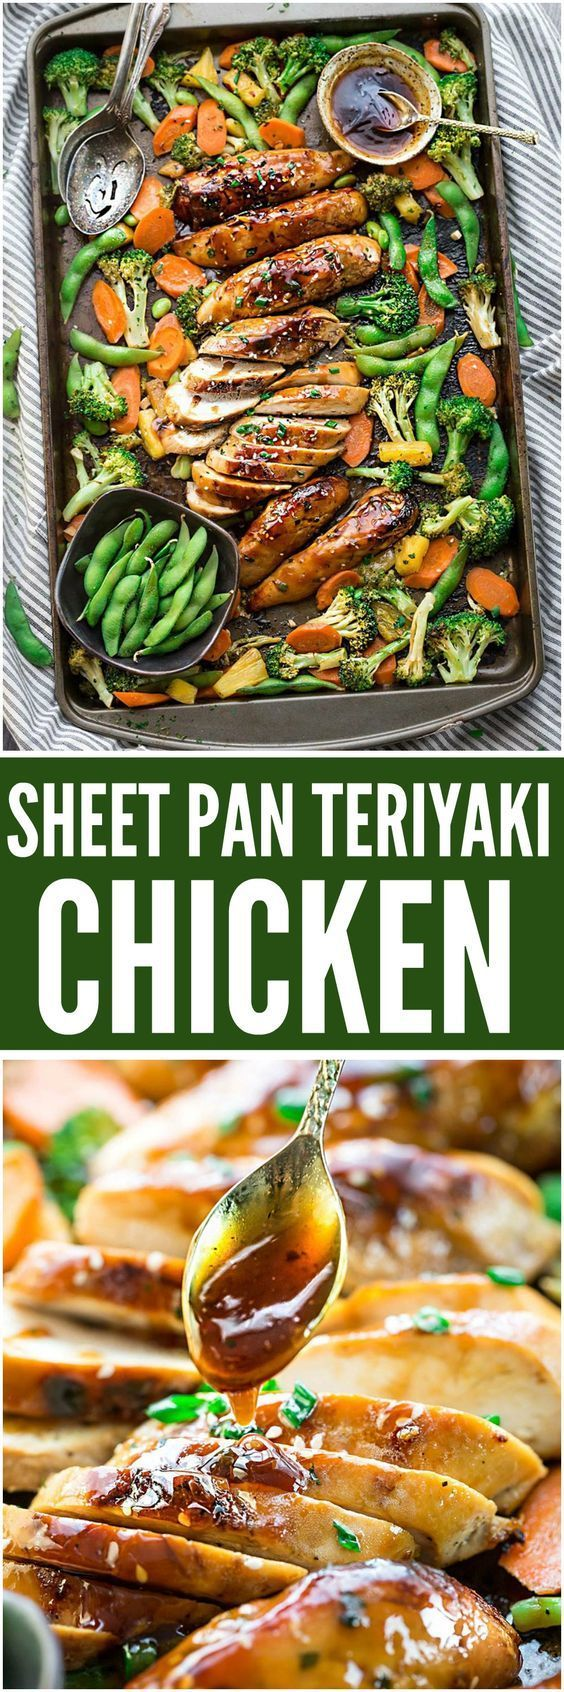 Sheet Pan Teriyaki Chicken with Vegetables is an easy meal perfect for busy weeknights. Best of all, it's made entirely in one pan with tender chicken, crispy veggies with the most flavorful sweet and tangy Asian sauce.